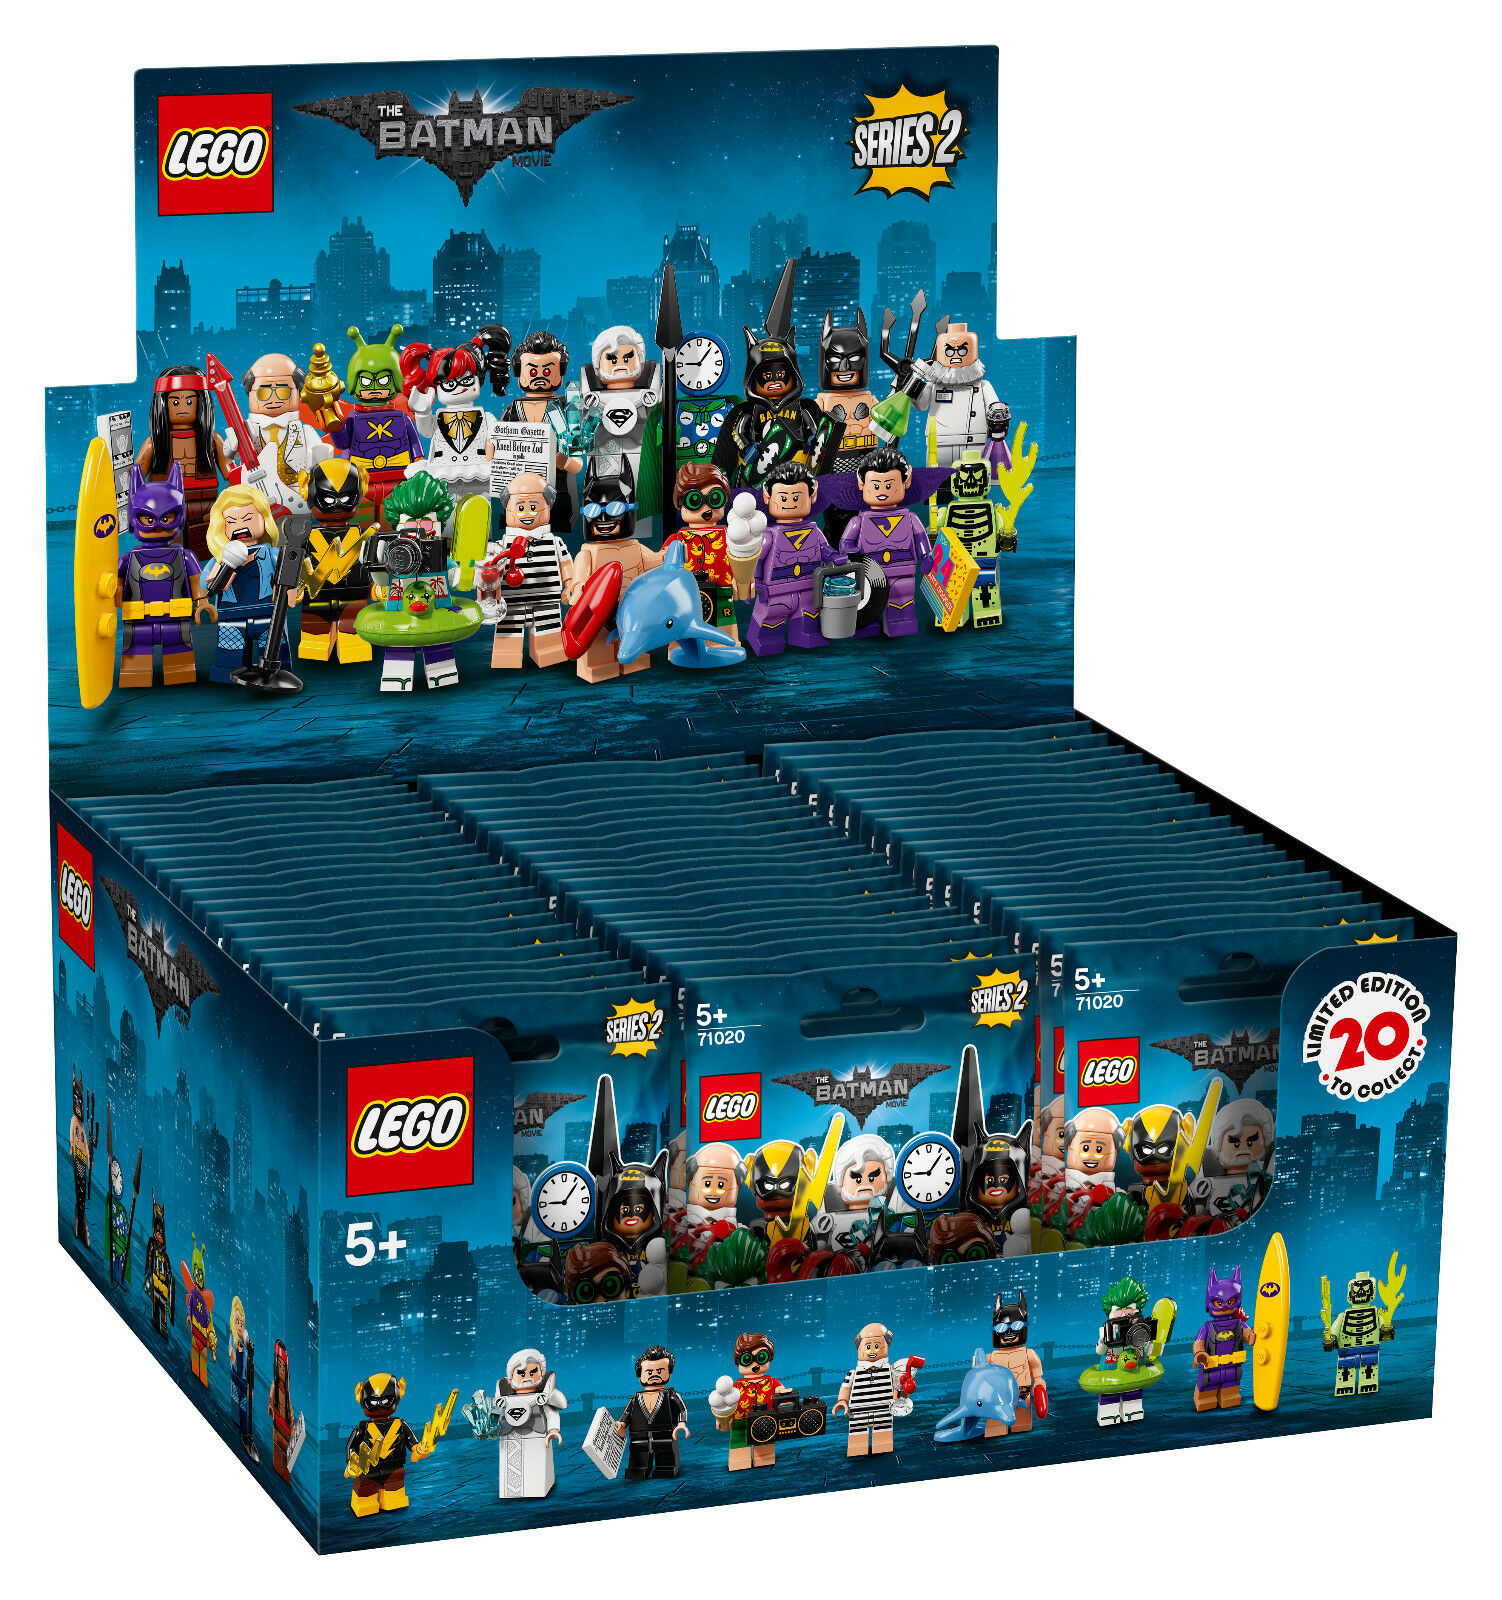 Lego 71020 Display - Batman il Film Serie 2 INKL.60 Figure Consegna Immediata